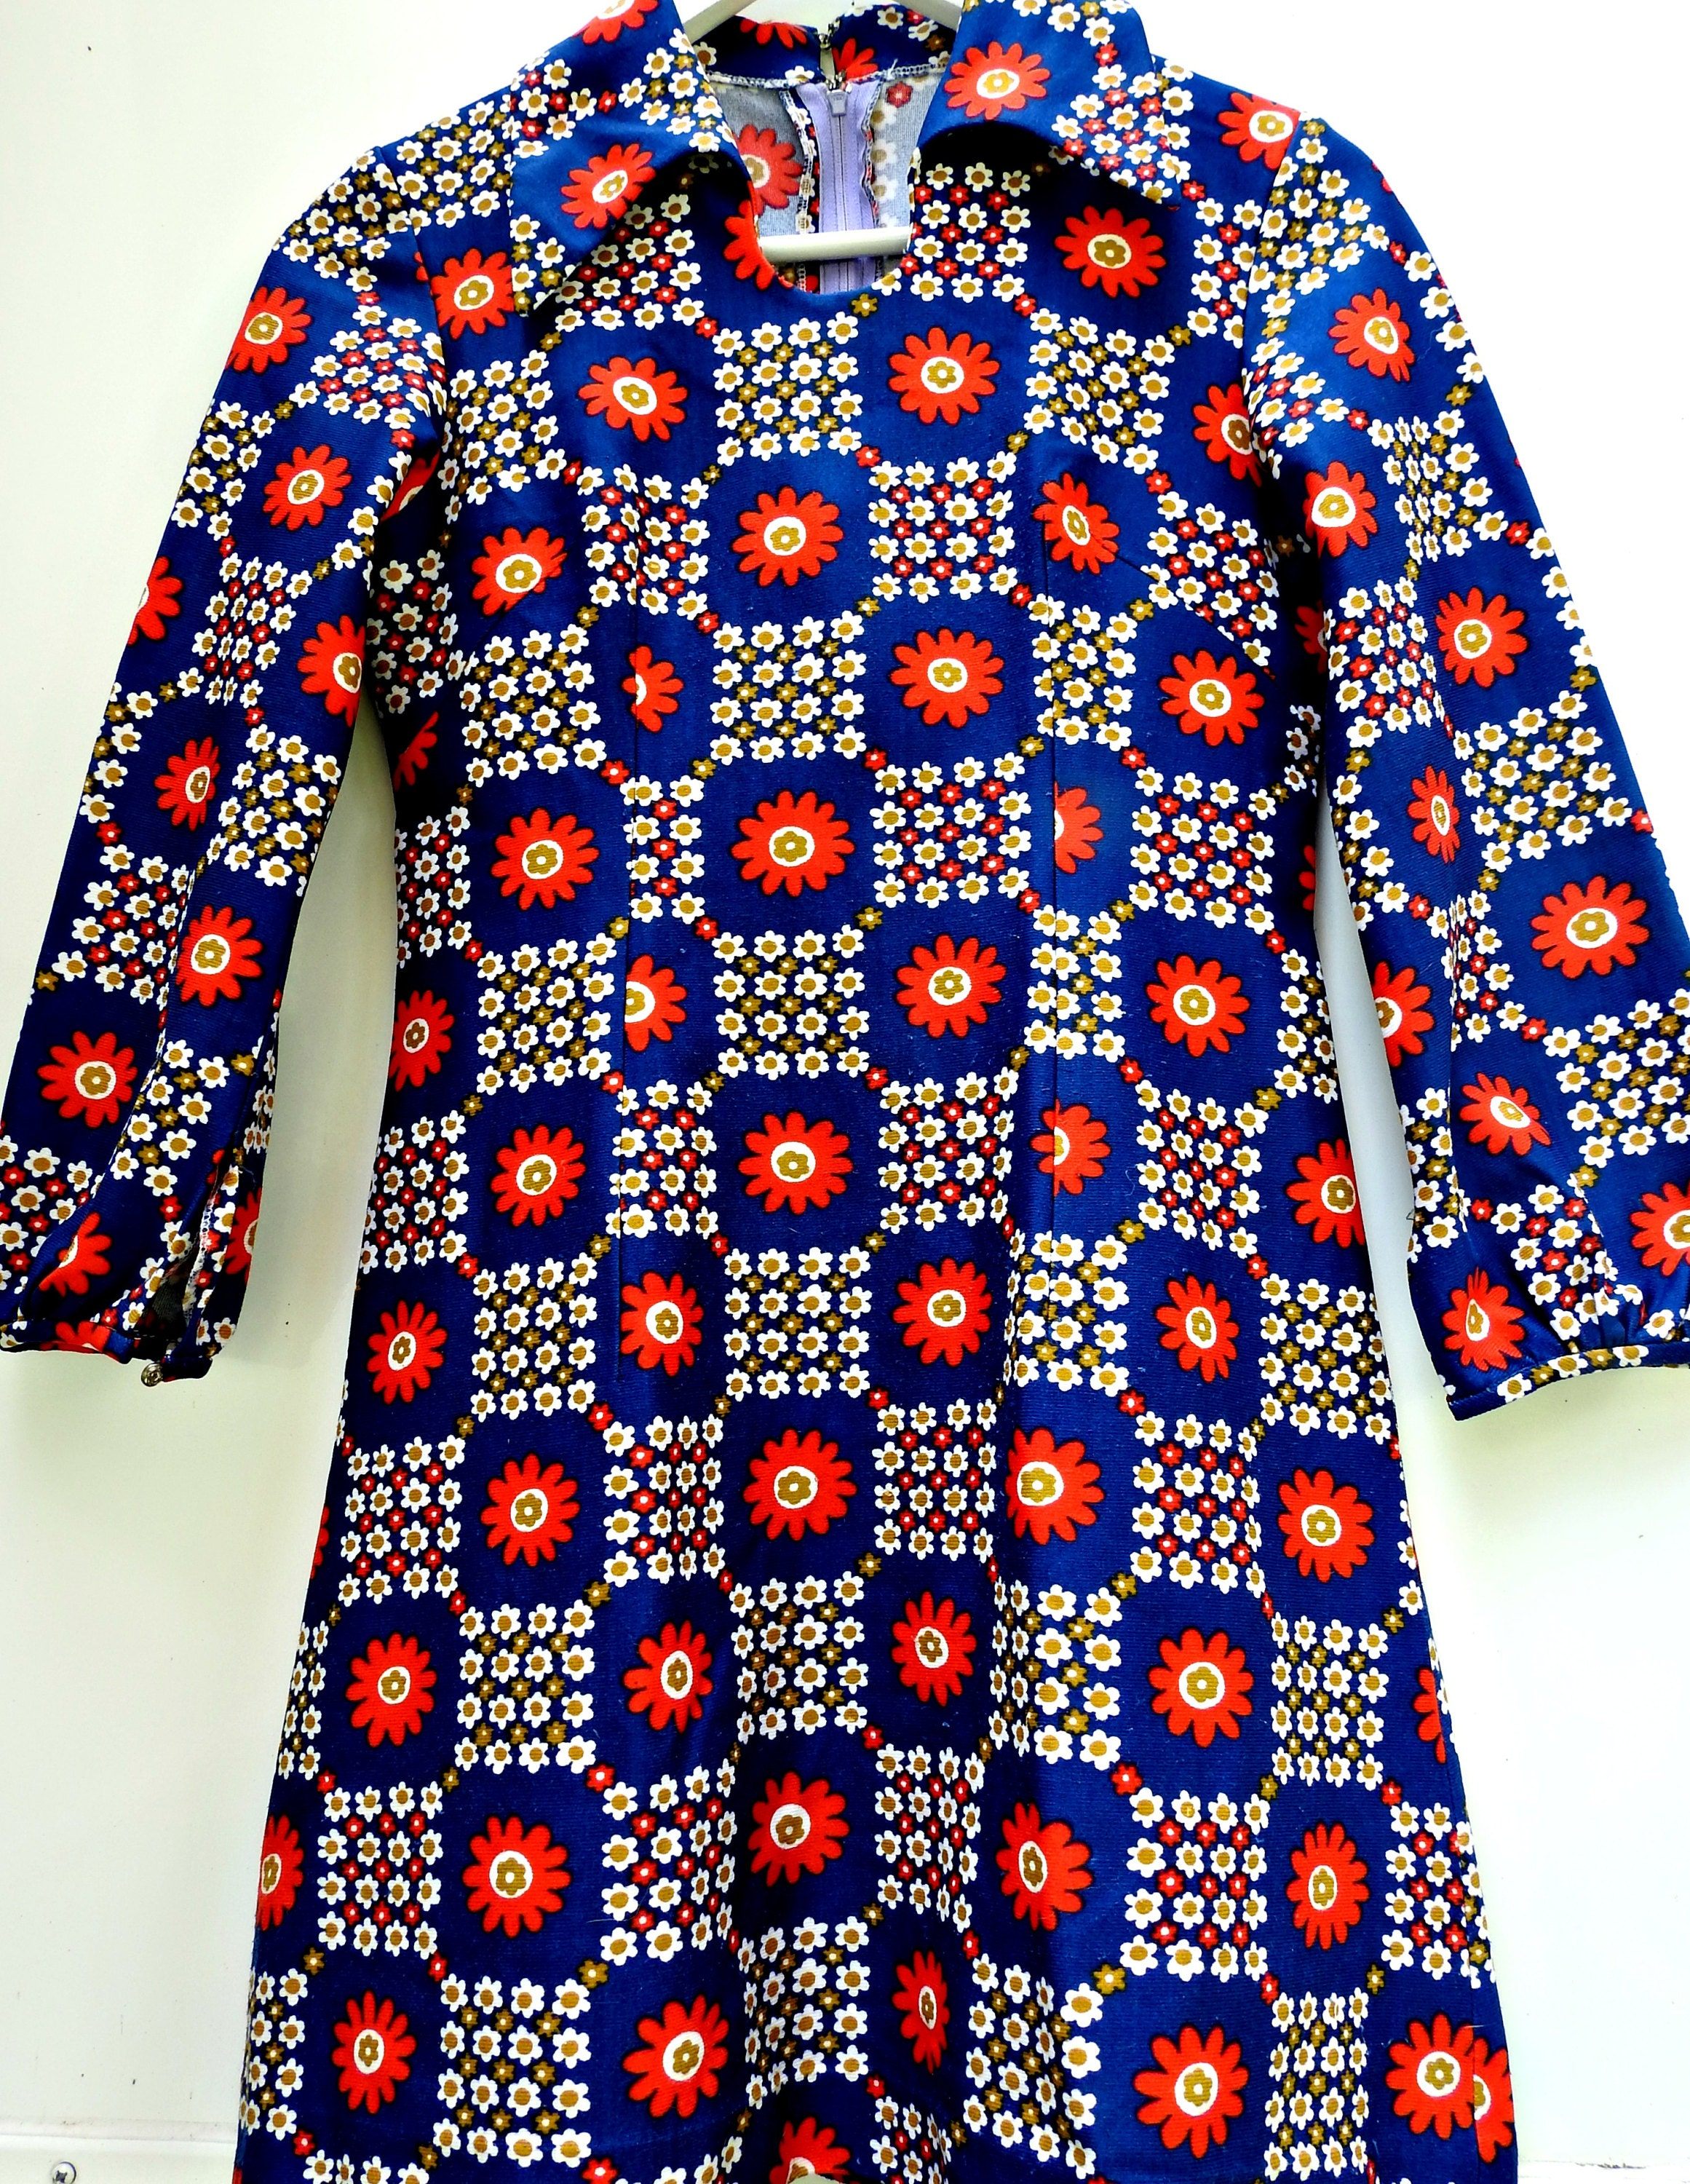 robe vintage, boutique vintage, vintage canada, etsy canada, canadian sellers etsy, robe mode 1970s, habit vintage, robe mode 70s